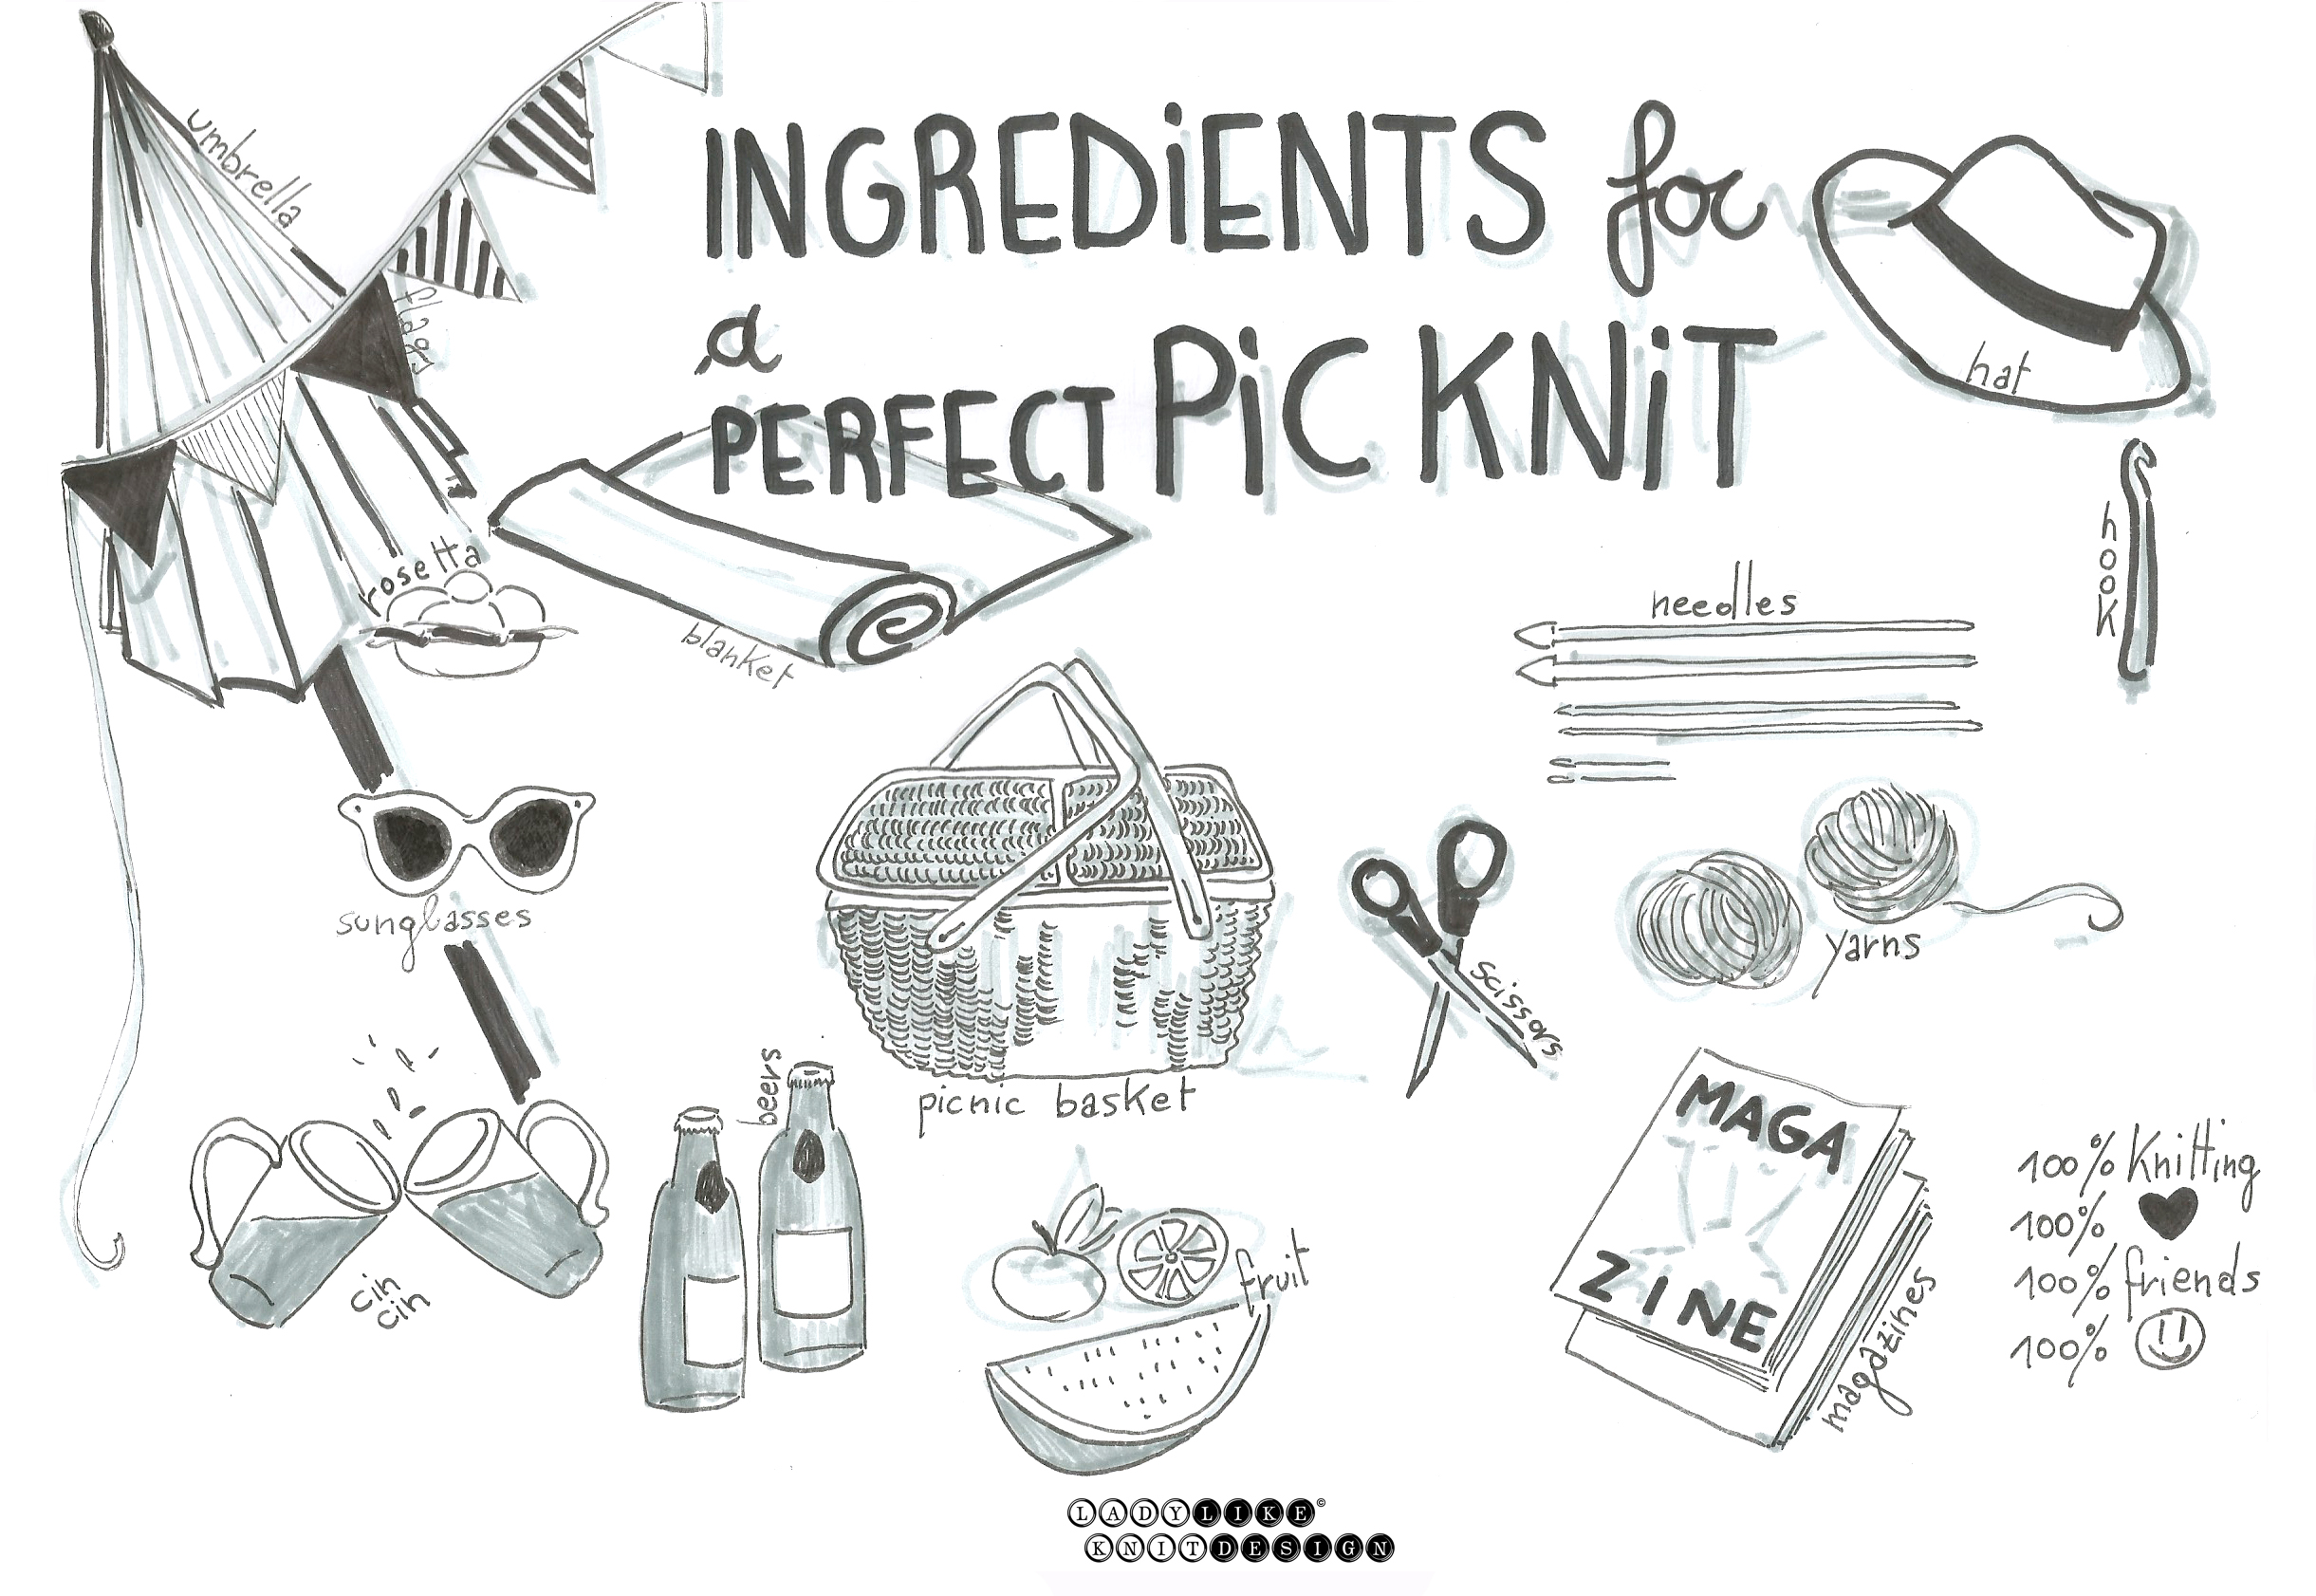 ingredientperfectPICKNIT